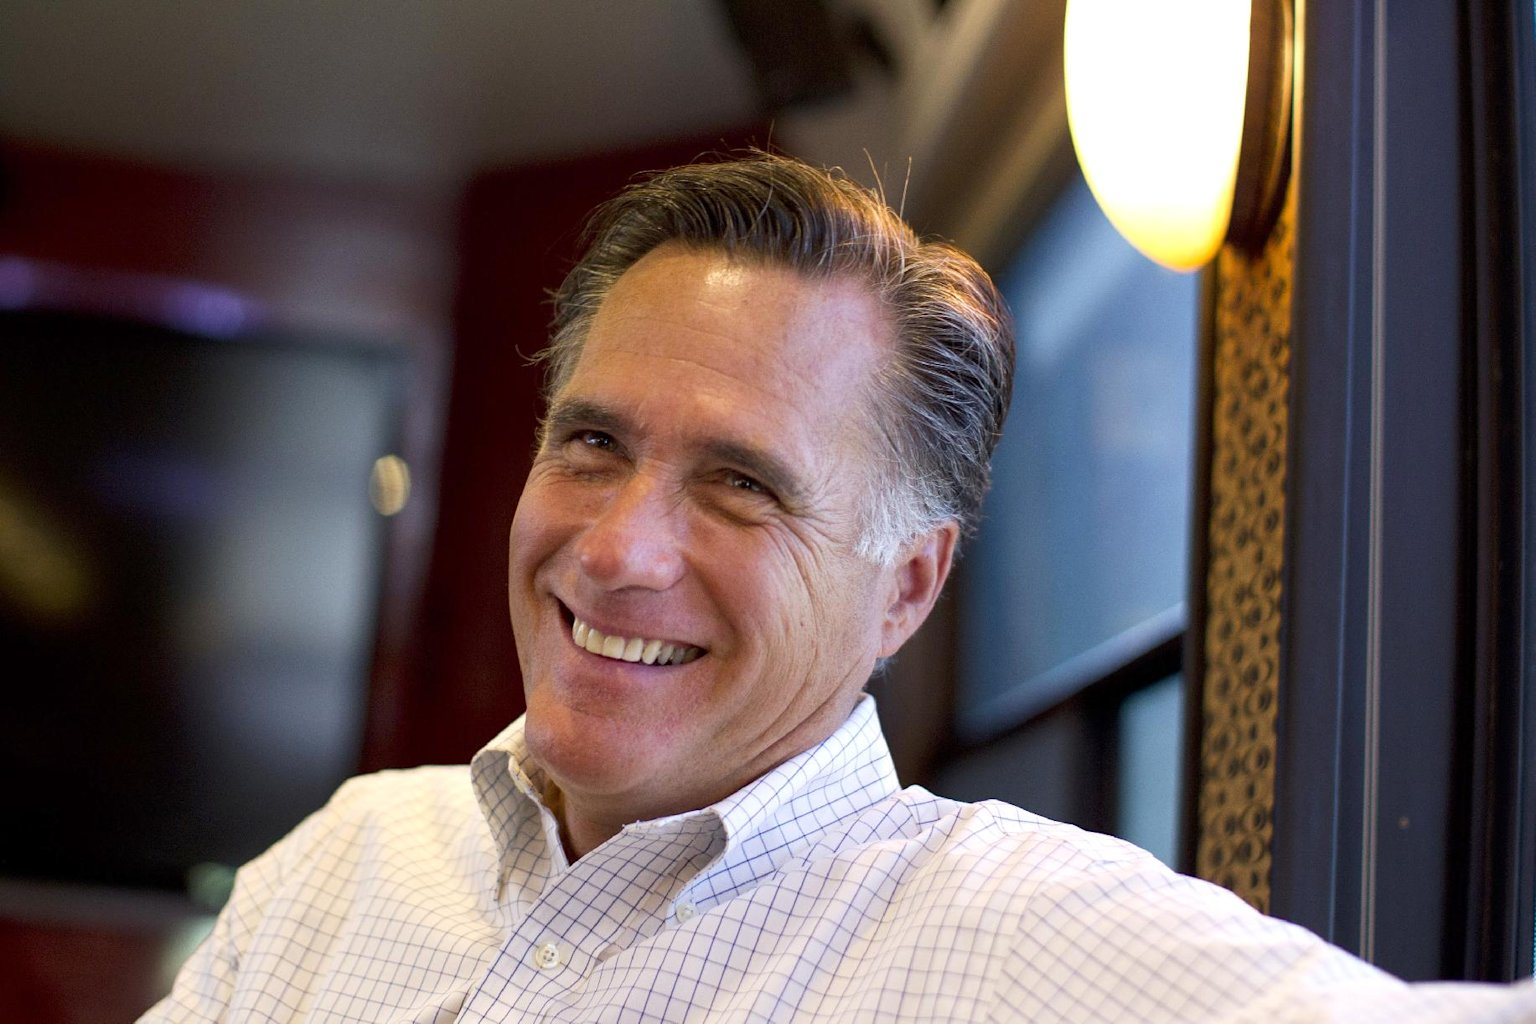 In this June 8, 2012, photo, Republican presidential candidate, former Massachusetts Gov. Mitt Romney smiles has he talks with his staff while riding on his bus after a campaign stop in Council Bluffs, Iowa. Republicans riding high from a string of breaks in their favor are increasingly optimistic about Romney's chances to claim the White House in November, even among conservatives who had qualms about making him the party's nominee. The bullish take is reflected in interviews with party strategists and activists, including people who supported Romney rivals during the primary season. Mood matters because it can fuel fundraising and volunteer hustle. But some of those GOP players stress that Romney has little room for error if he expects to topple an incumbent president.